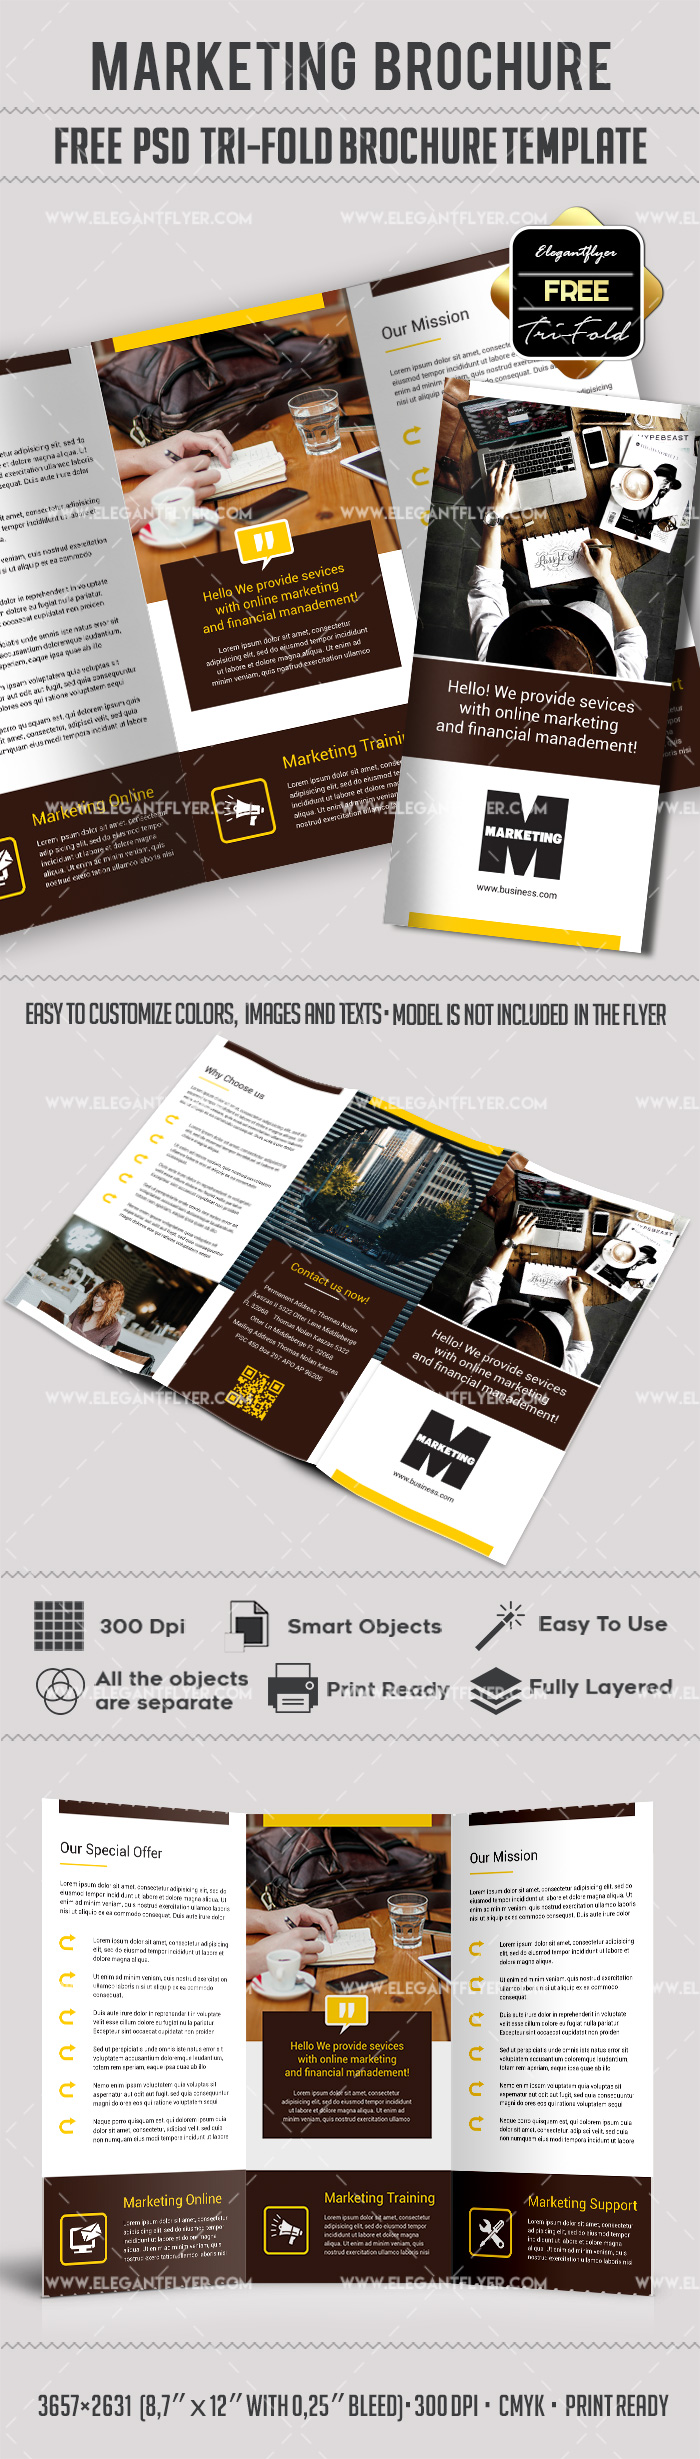 Marketing free tri fold psd brochure template by for Tri fold business brochure template